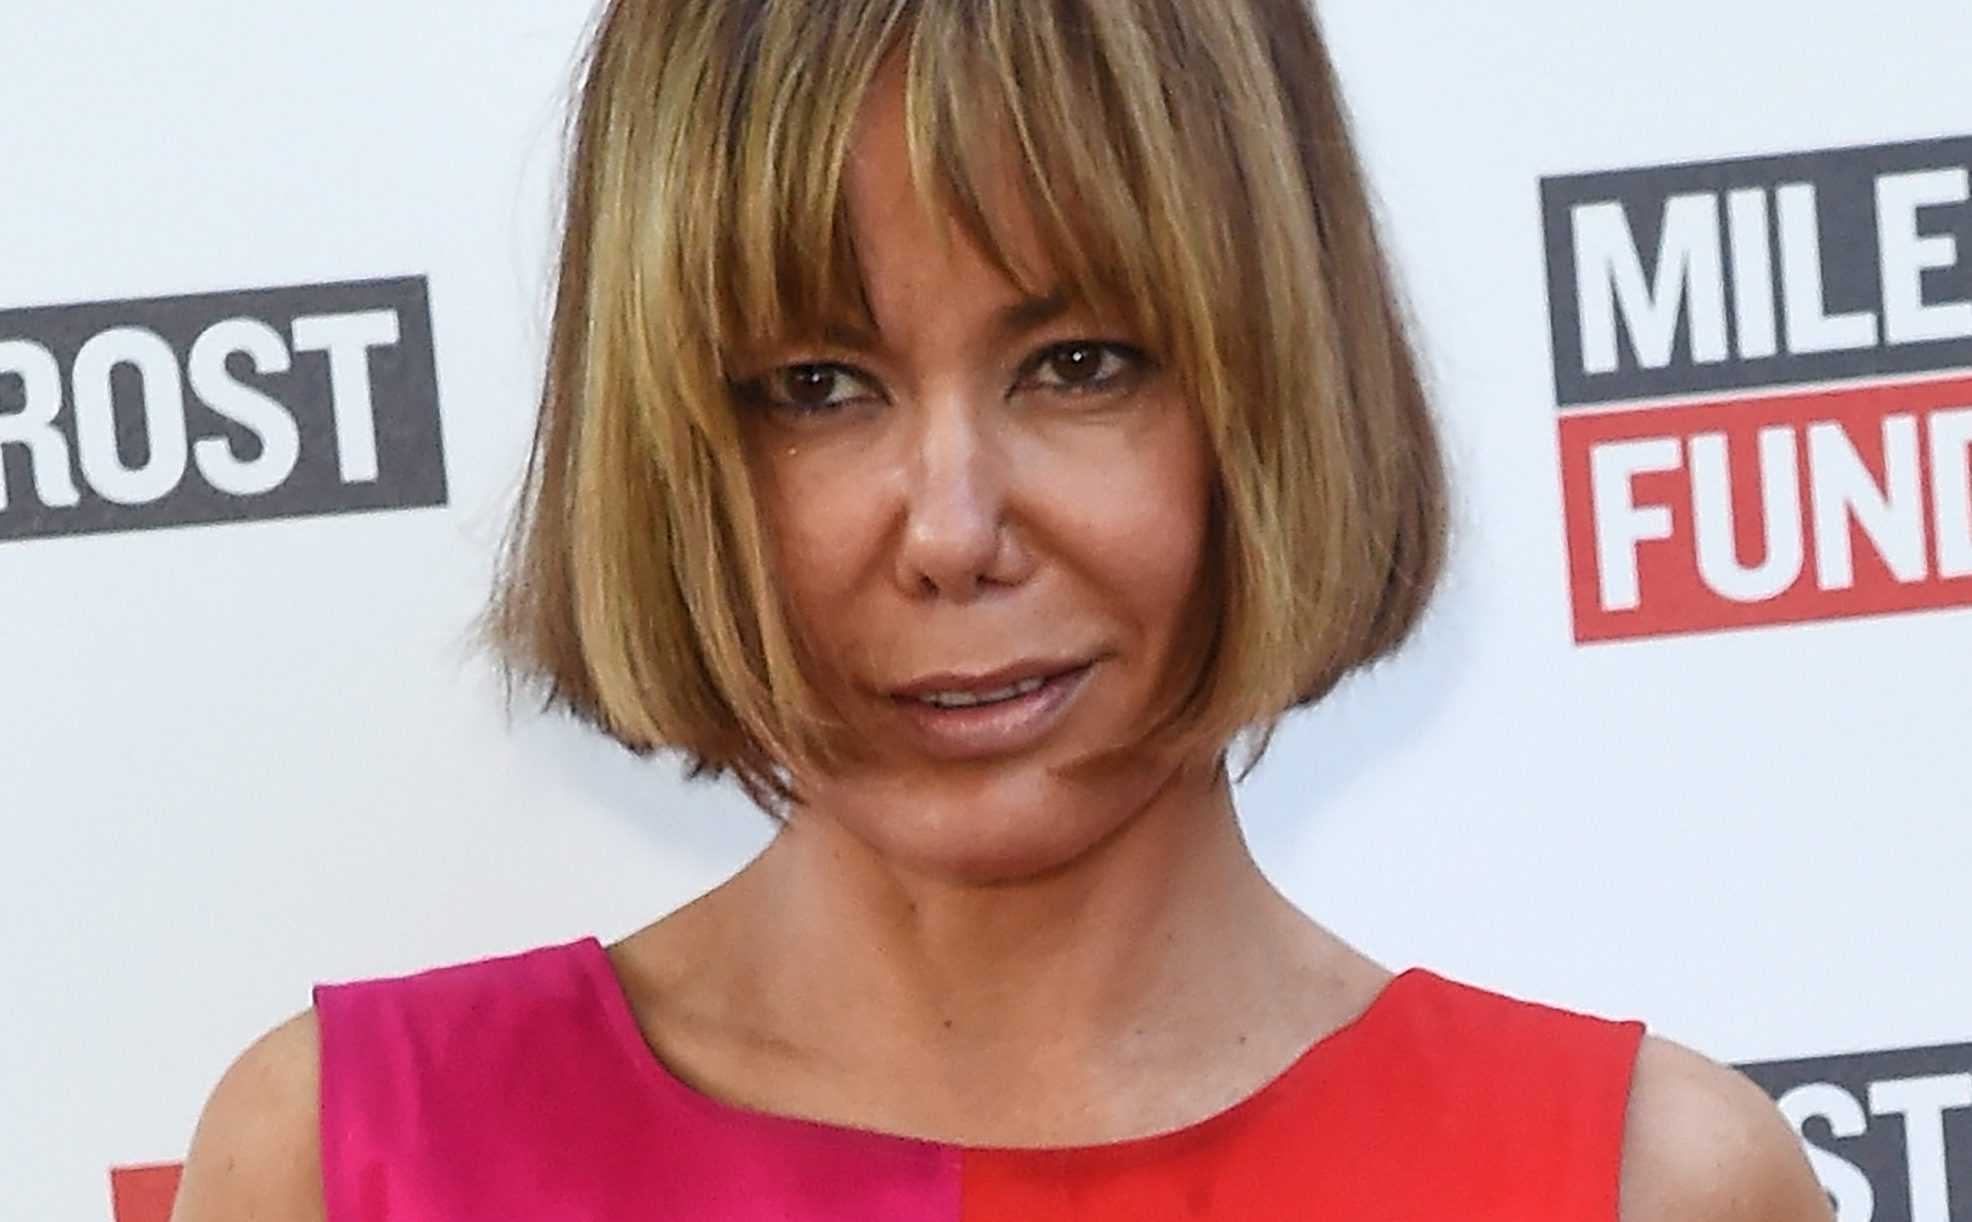 Tara Palmer-Tomkinson said to have died with 'painful' cocaine-induced holes in her mouth